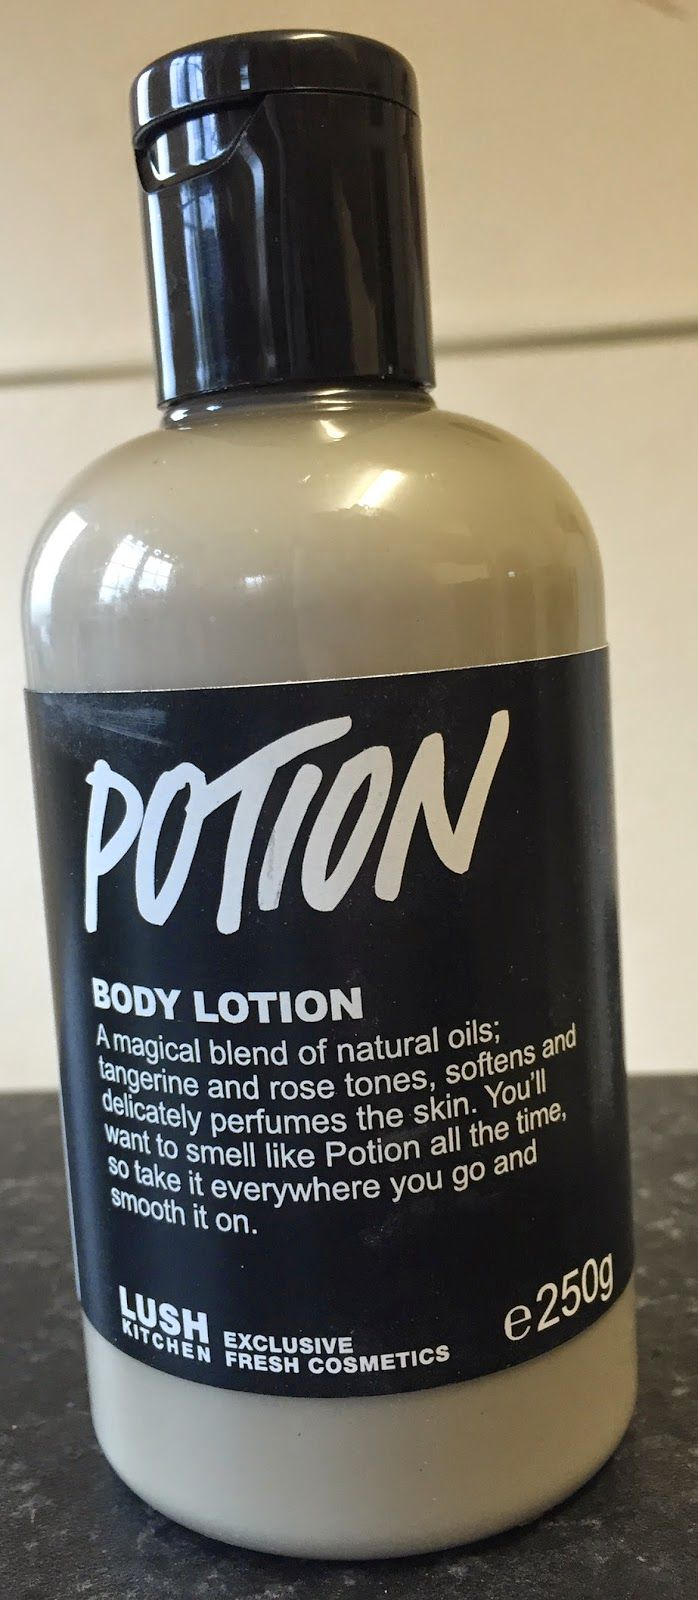 All Things Lush Uk Potion Body Lotion Lush Products I Tried But